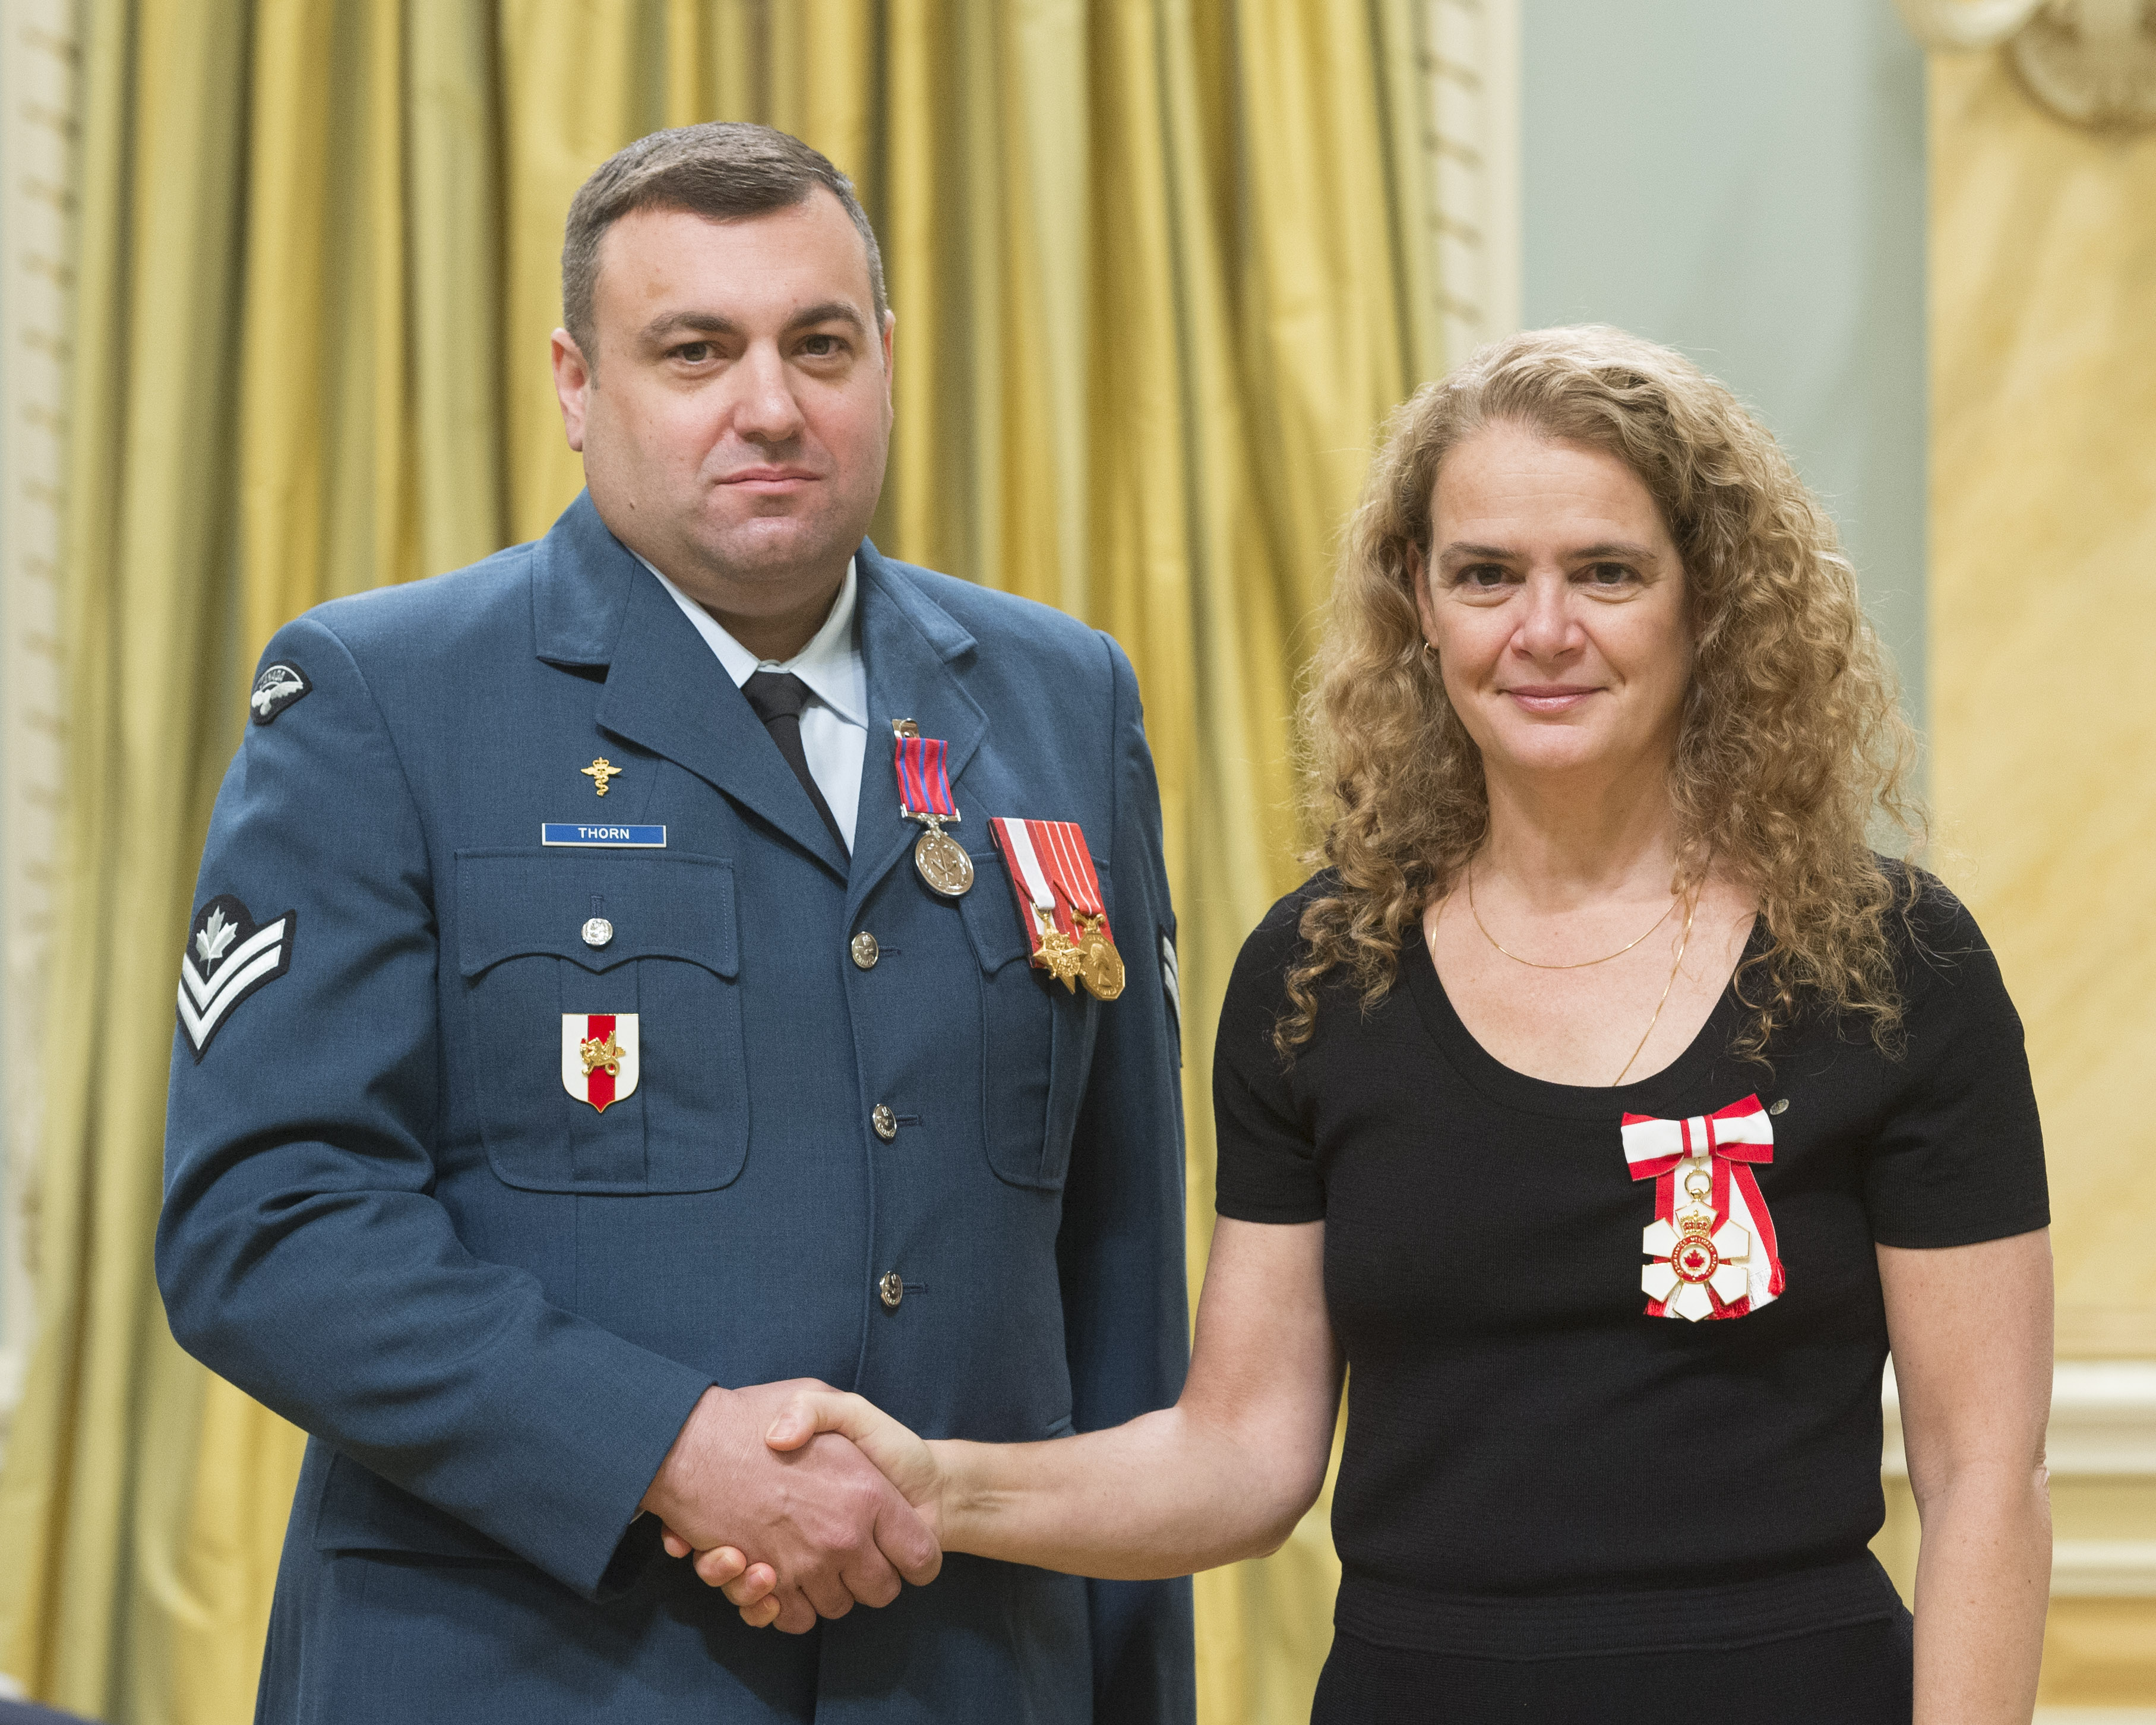 Governor General Julie Payette shakes hands with Master Corporal Shawn Thorn after presenting him with the Medal of Bravery on November 23, 2017, at Rideau Hall in Ottawa. Master Corporal Thorn and three other members of the Canadian Armed Forces received the decoration for rescuing a family from their burning home. PHOTO: Sergeant Johanie Maheu, Rideau Hall, © OSGG, GG05-2017-0418-045